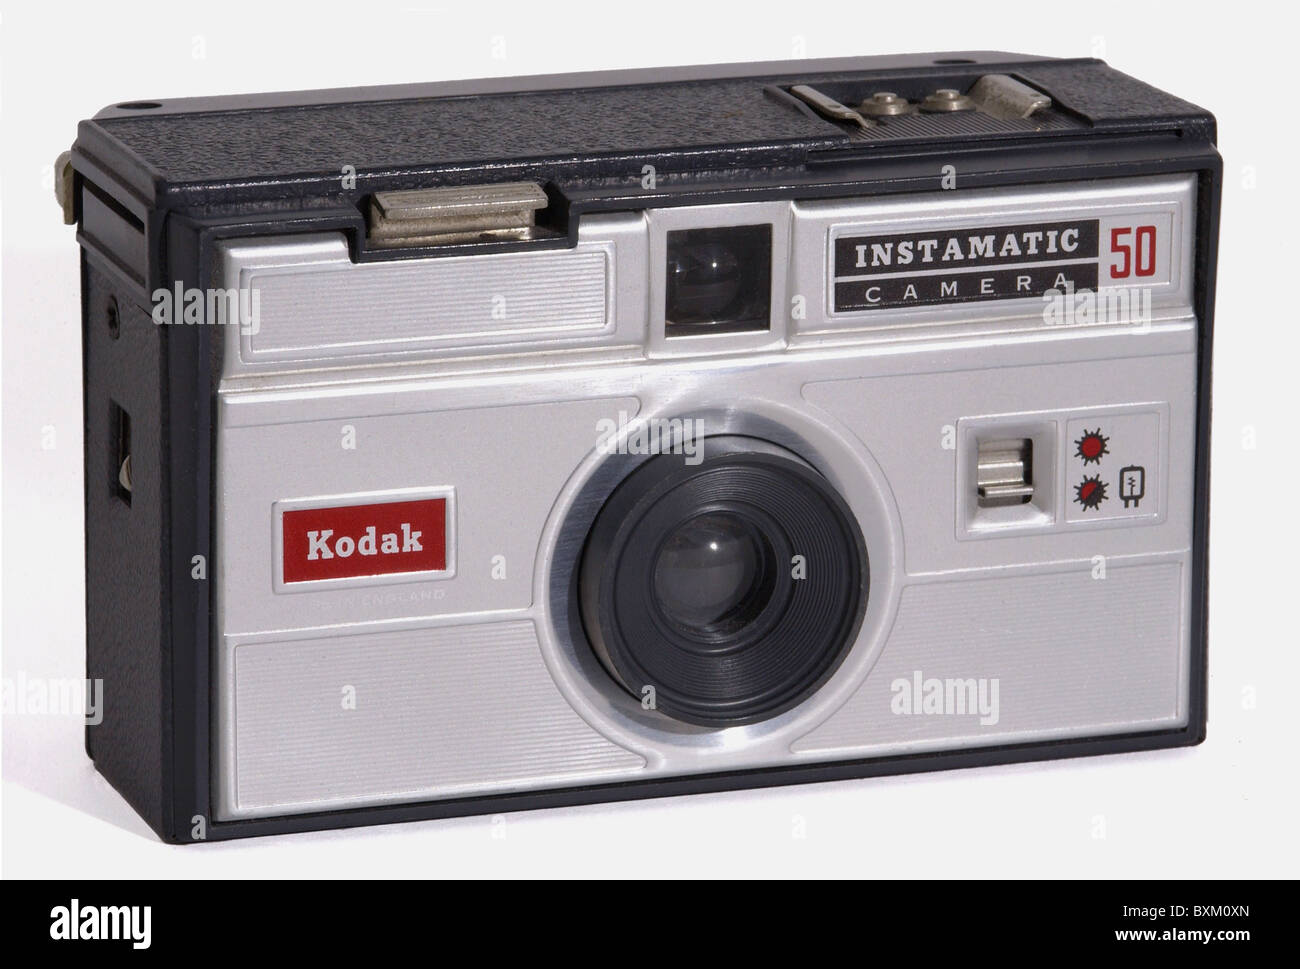 photography, cameras, Kodak Instamatic 50, produced from 1963 until 1966, Made in England, 1960s, 60s, 20th century, - Stock Image